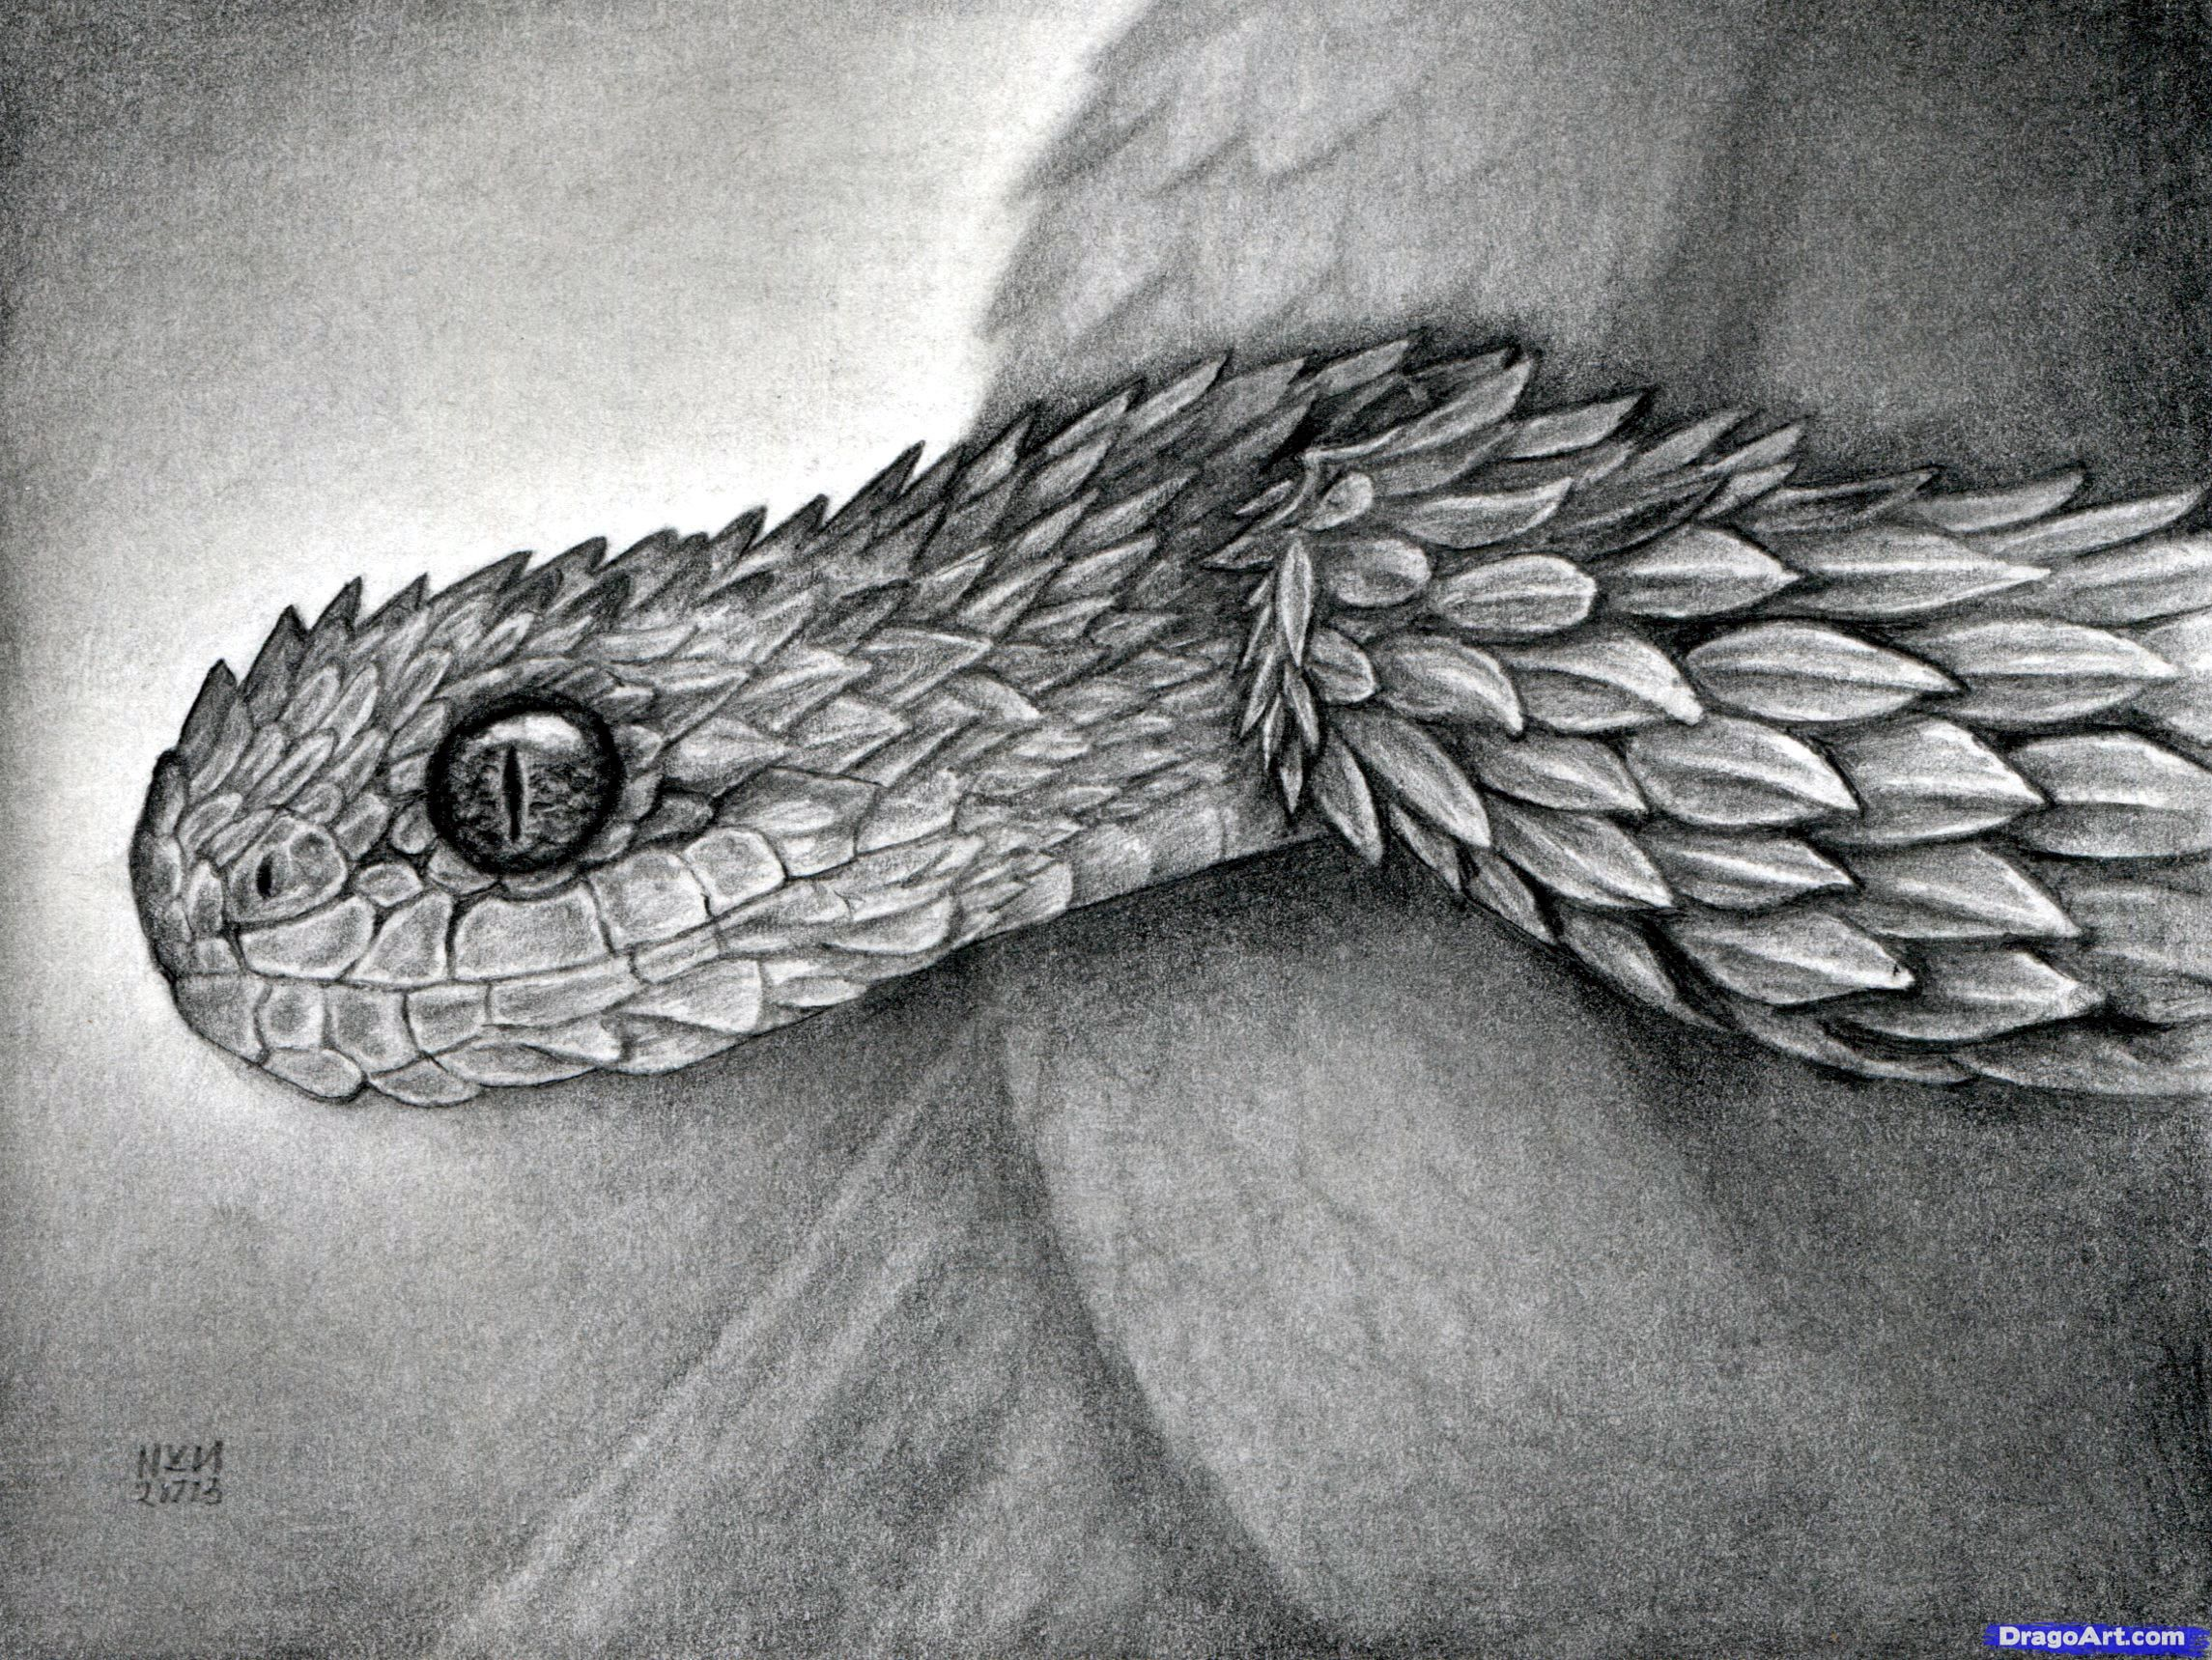 Image Result For How To Draw A Realistic Snake Snake Sketch Snake Drawing Viper Snake